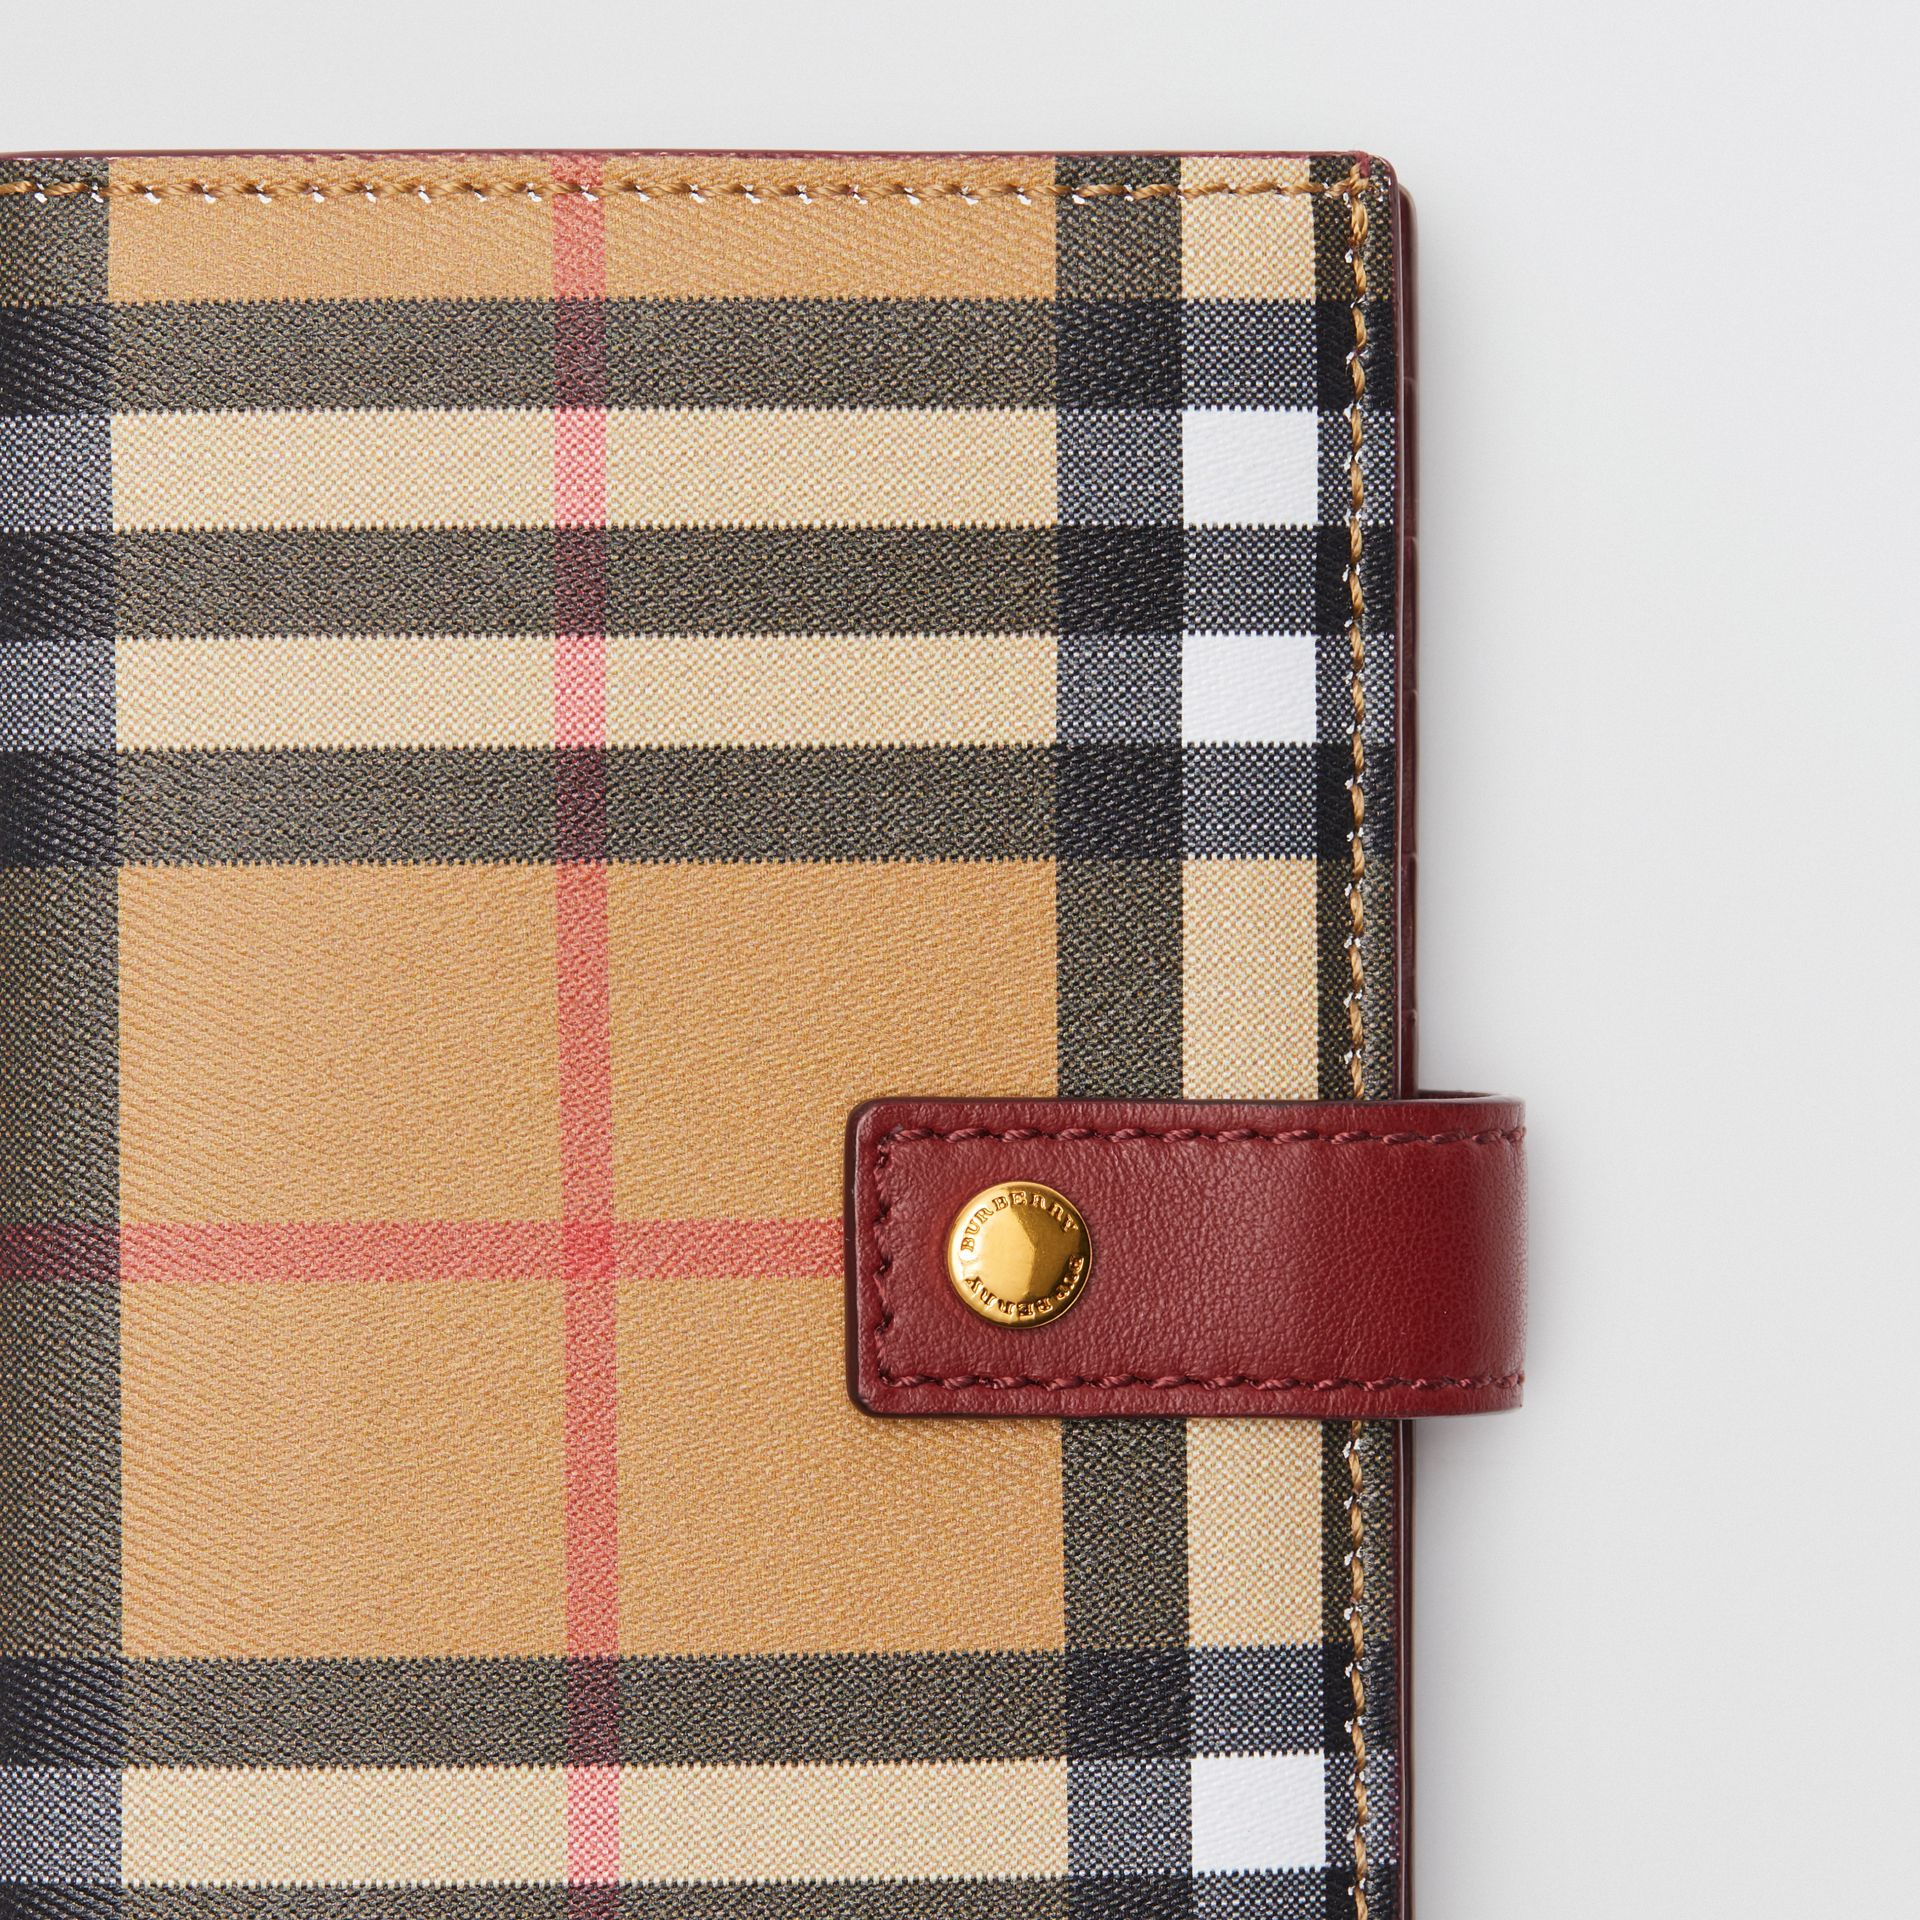 Vintage Check and Leather Folding Wallet in Crimson - Women | Burberry United Kingdom - gallery image 1